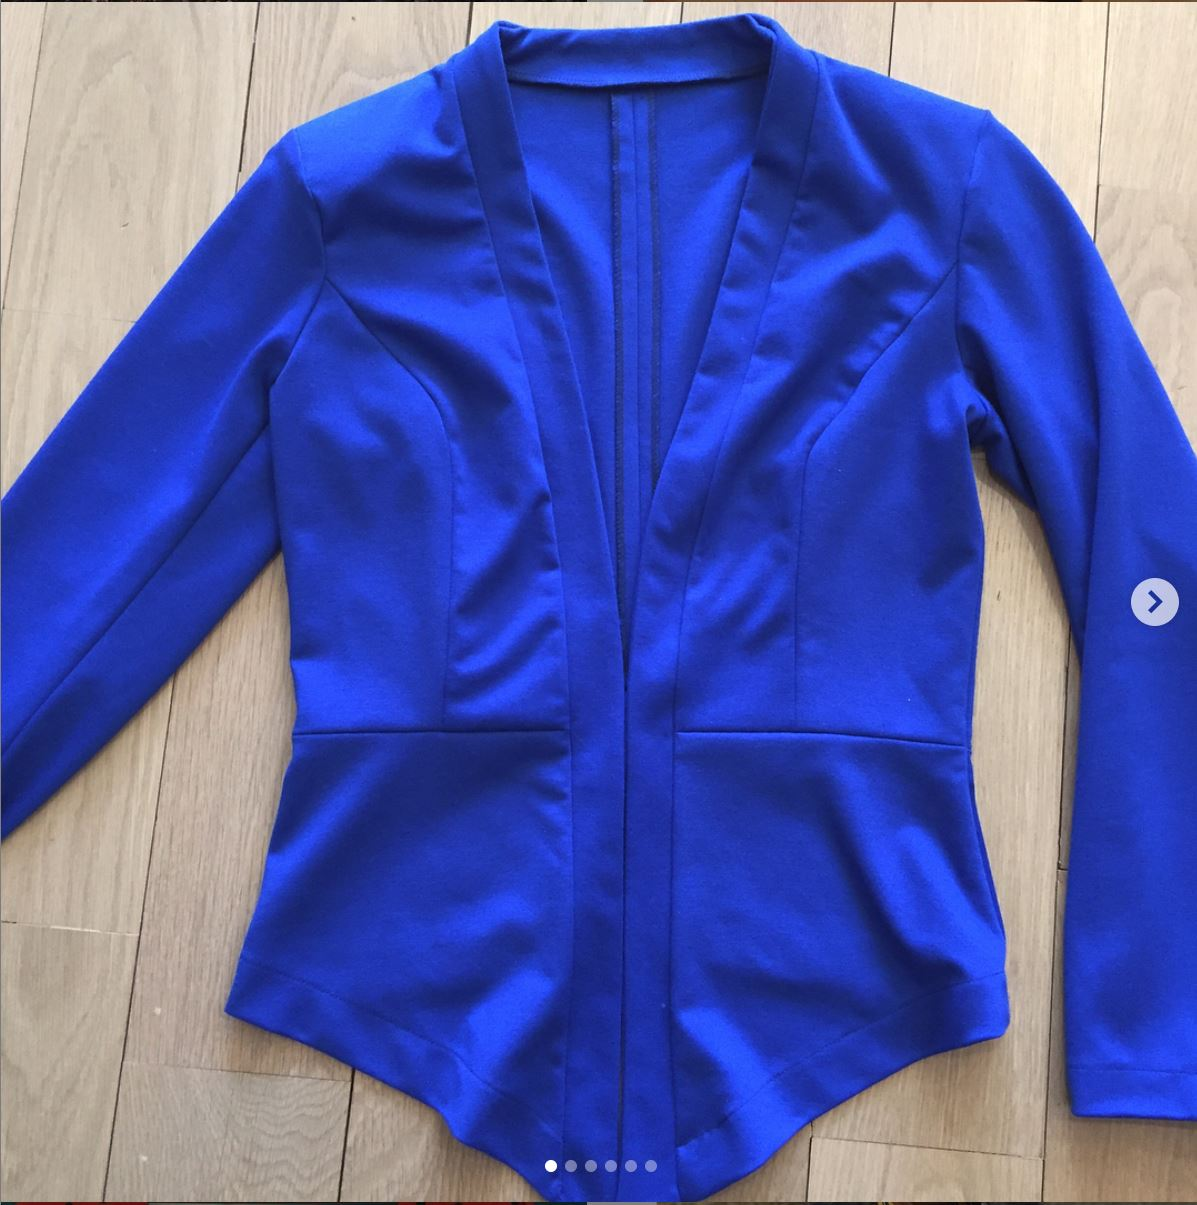 Cobalt blue jacket